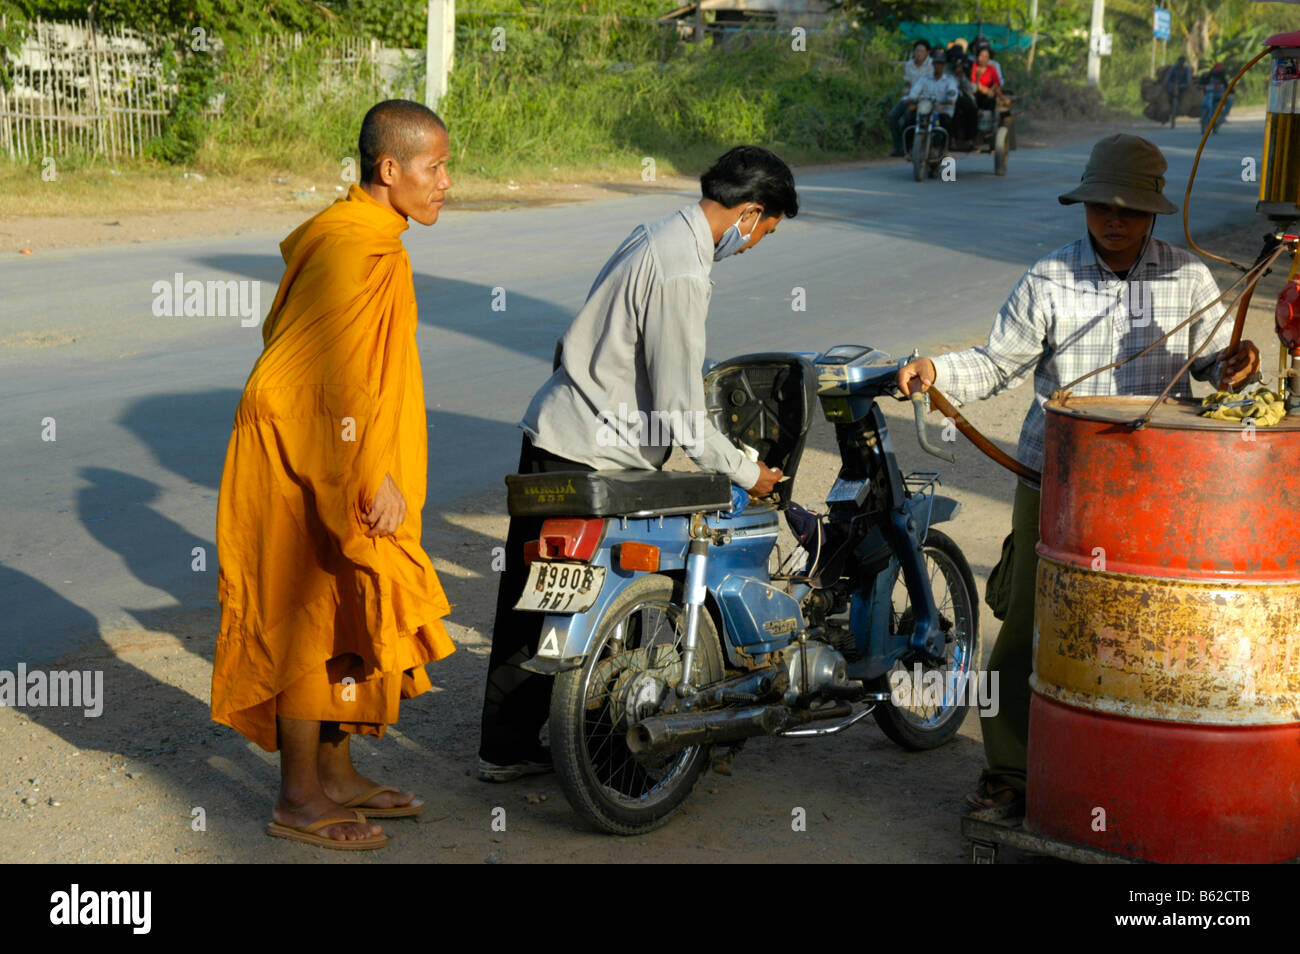 Motocycle driver with a monk at a primitive gas station, near Phnom Penh, Cambodia, Southeast Asia Stock Photo